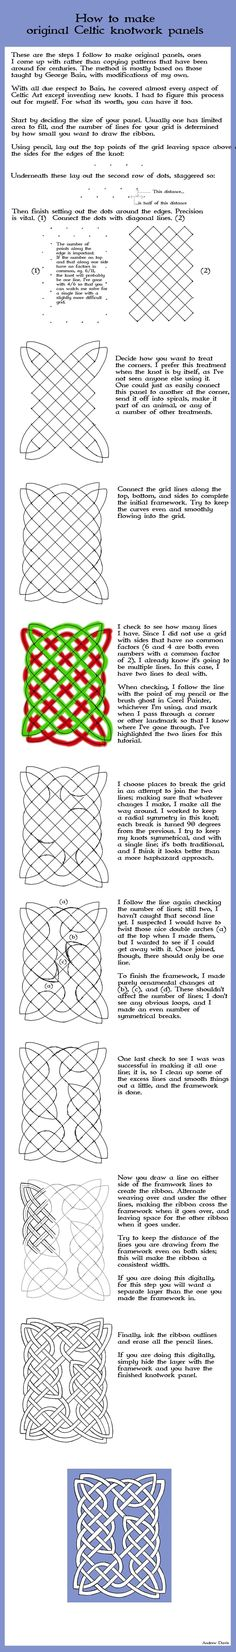 "celtic knotwork & design ""tutorial 2"" : beautifully laid out resource {Andrew Davis / Dweran, deviantART}"